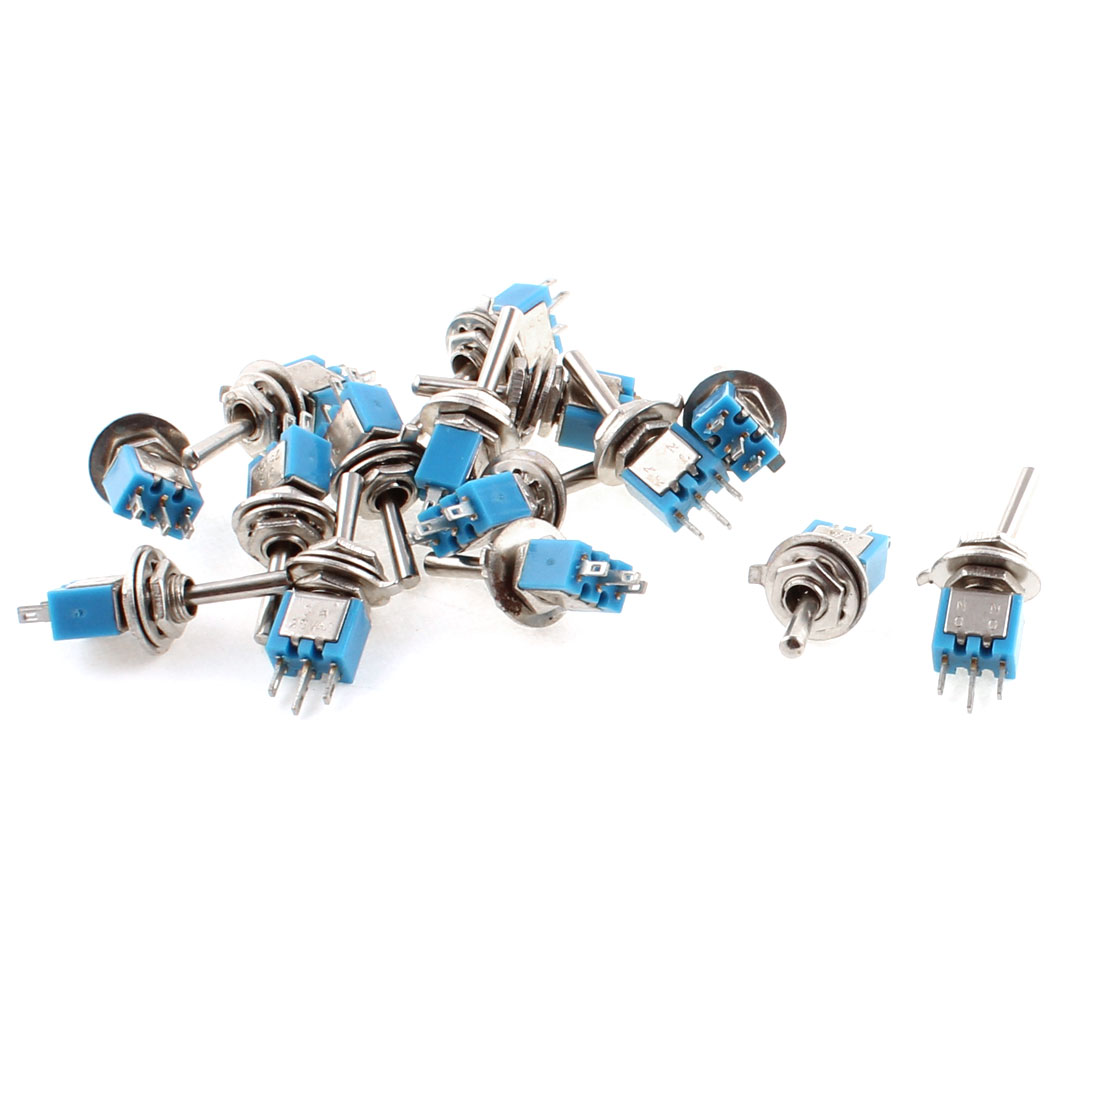 15pcs AC 250V 3A 2 Position ON/ON 3 Terminals 5mm Panel Mounting SPDT Latching Miniature Toggle Switch